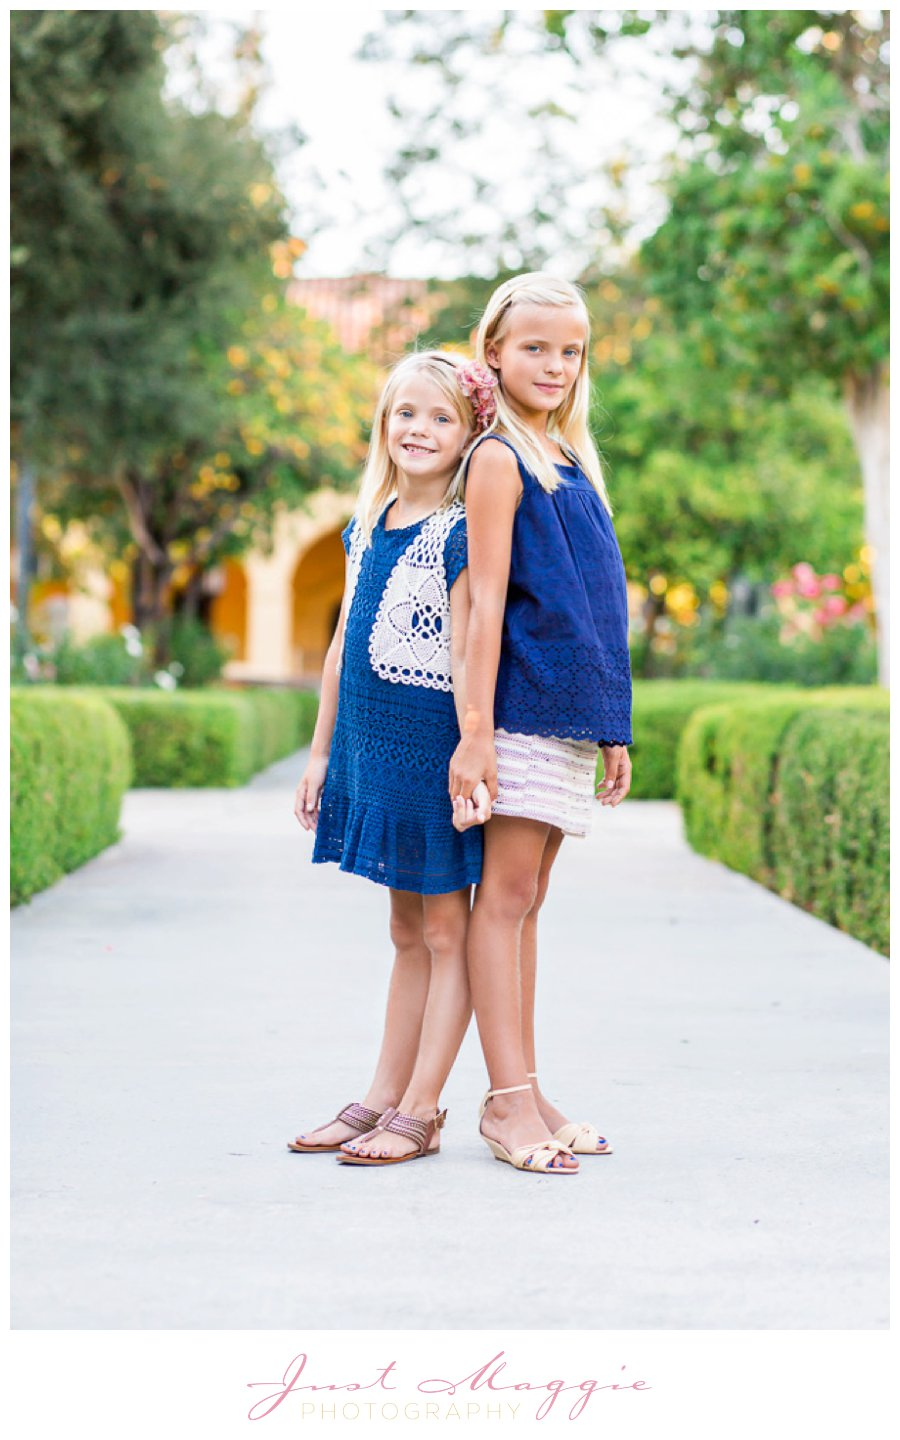 Playful Sister Sibling Portraits by Just Maggie Photography - Los Angeles Family Portrait Photographer